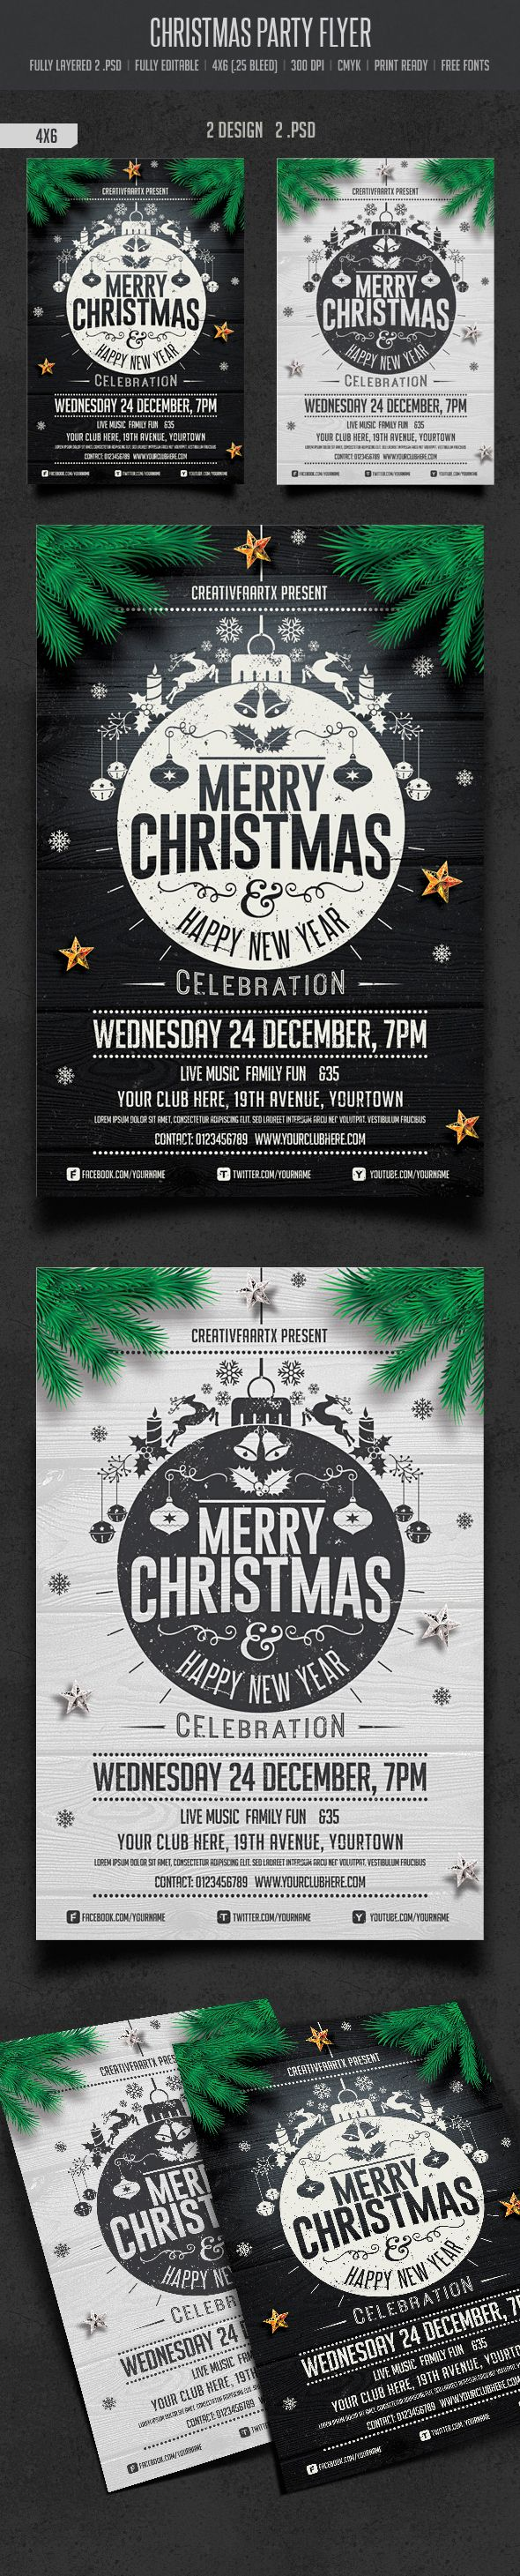 Christmas Party Flyer on Behance More Christmas